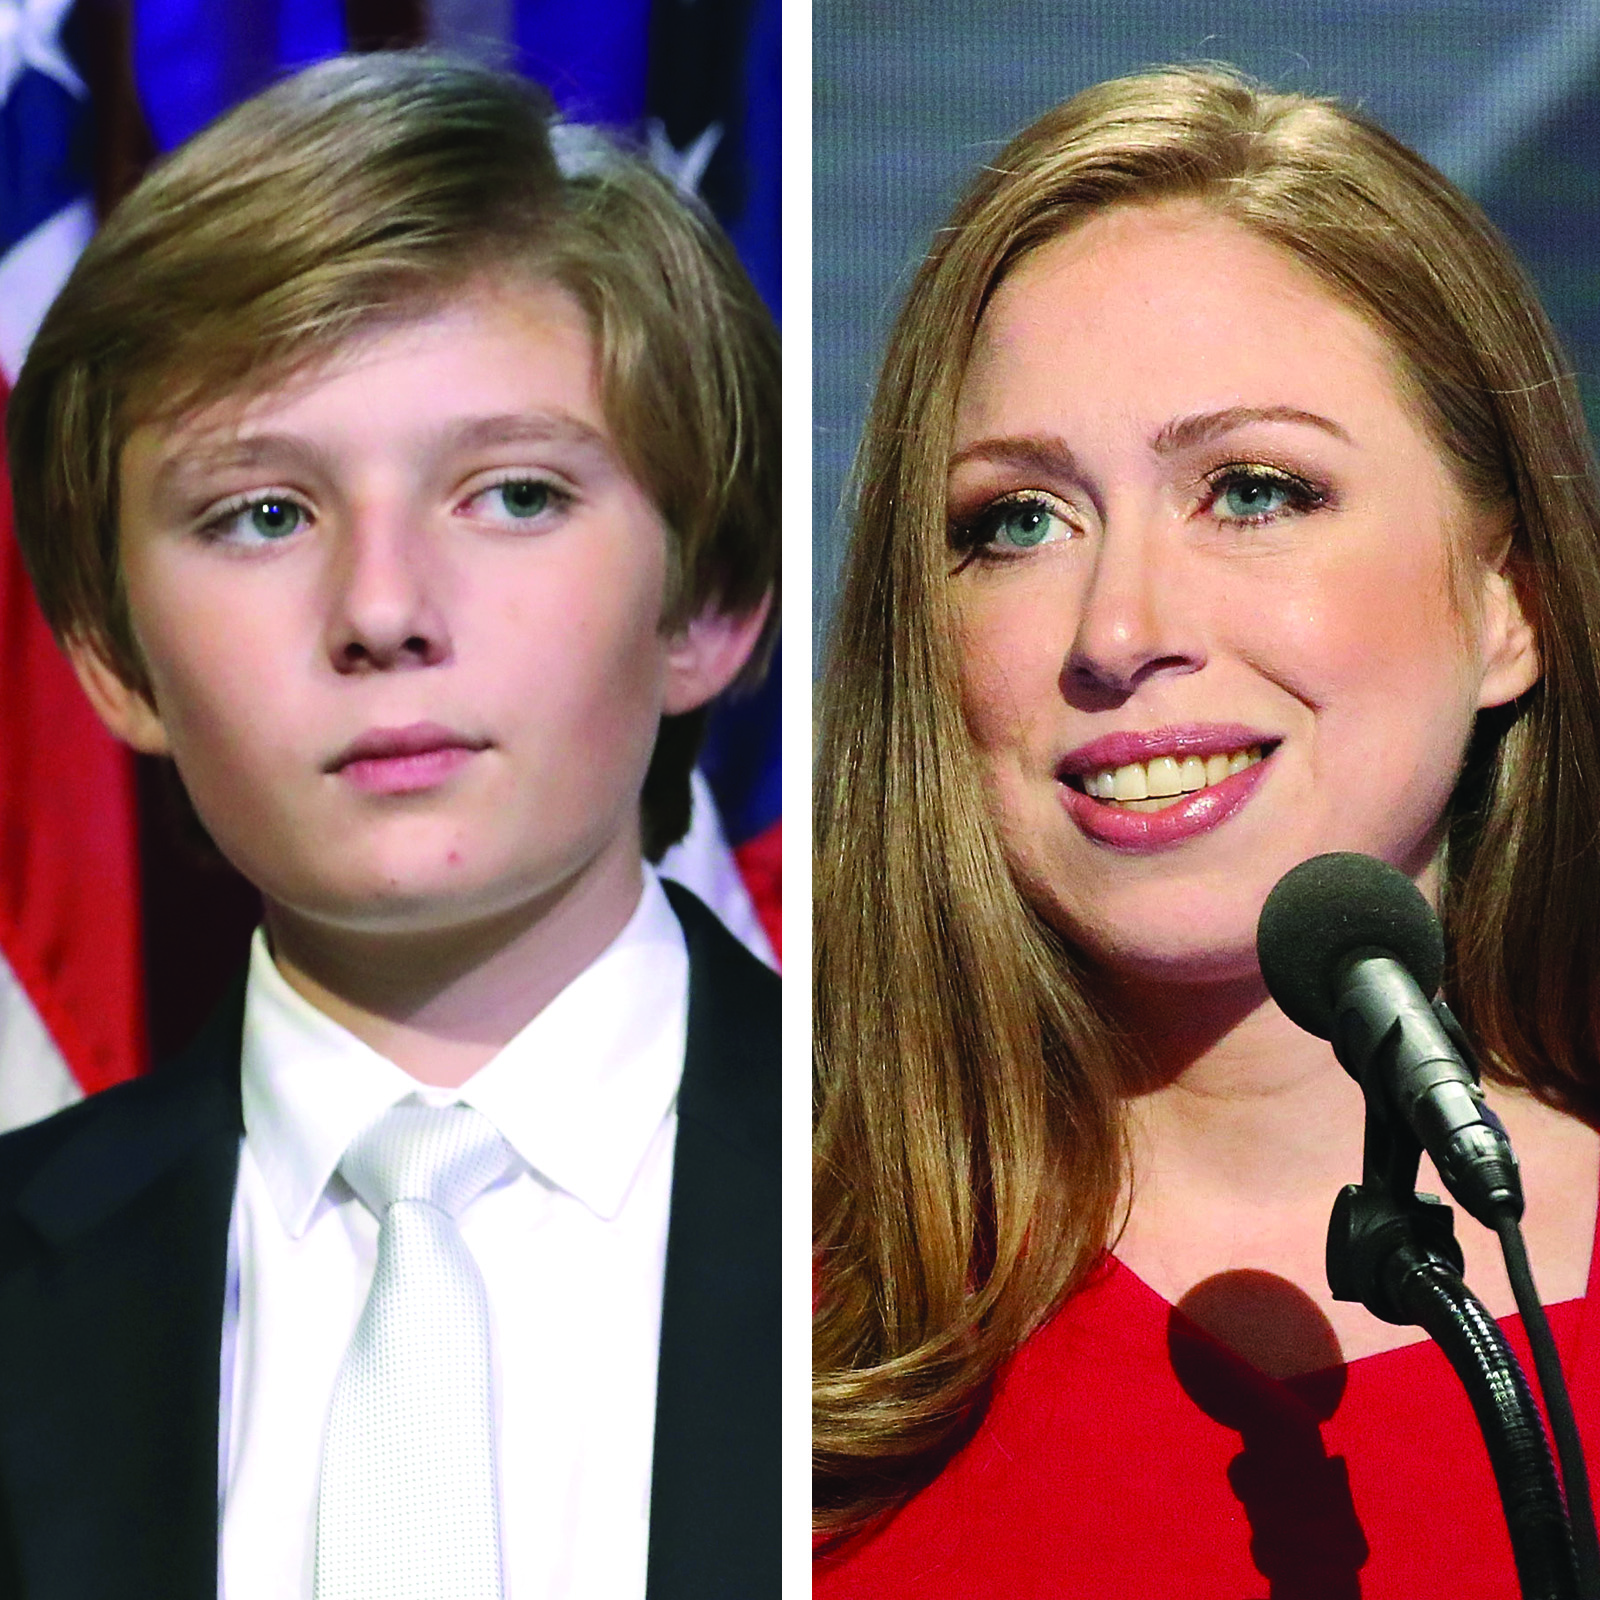 Barron Trump y Chelsea Clinton